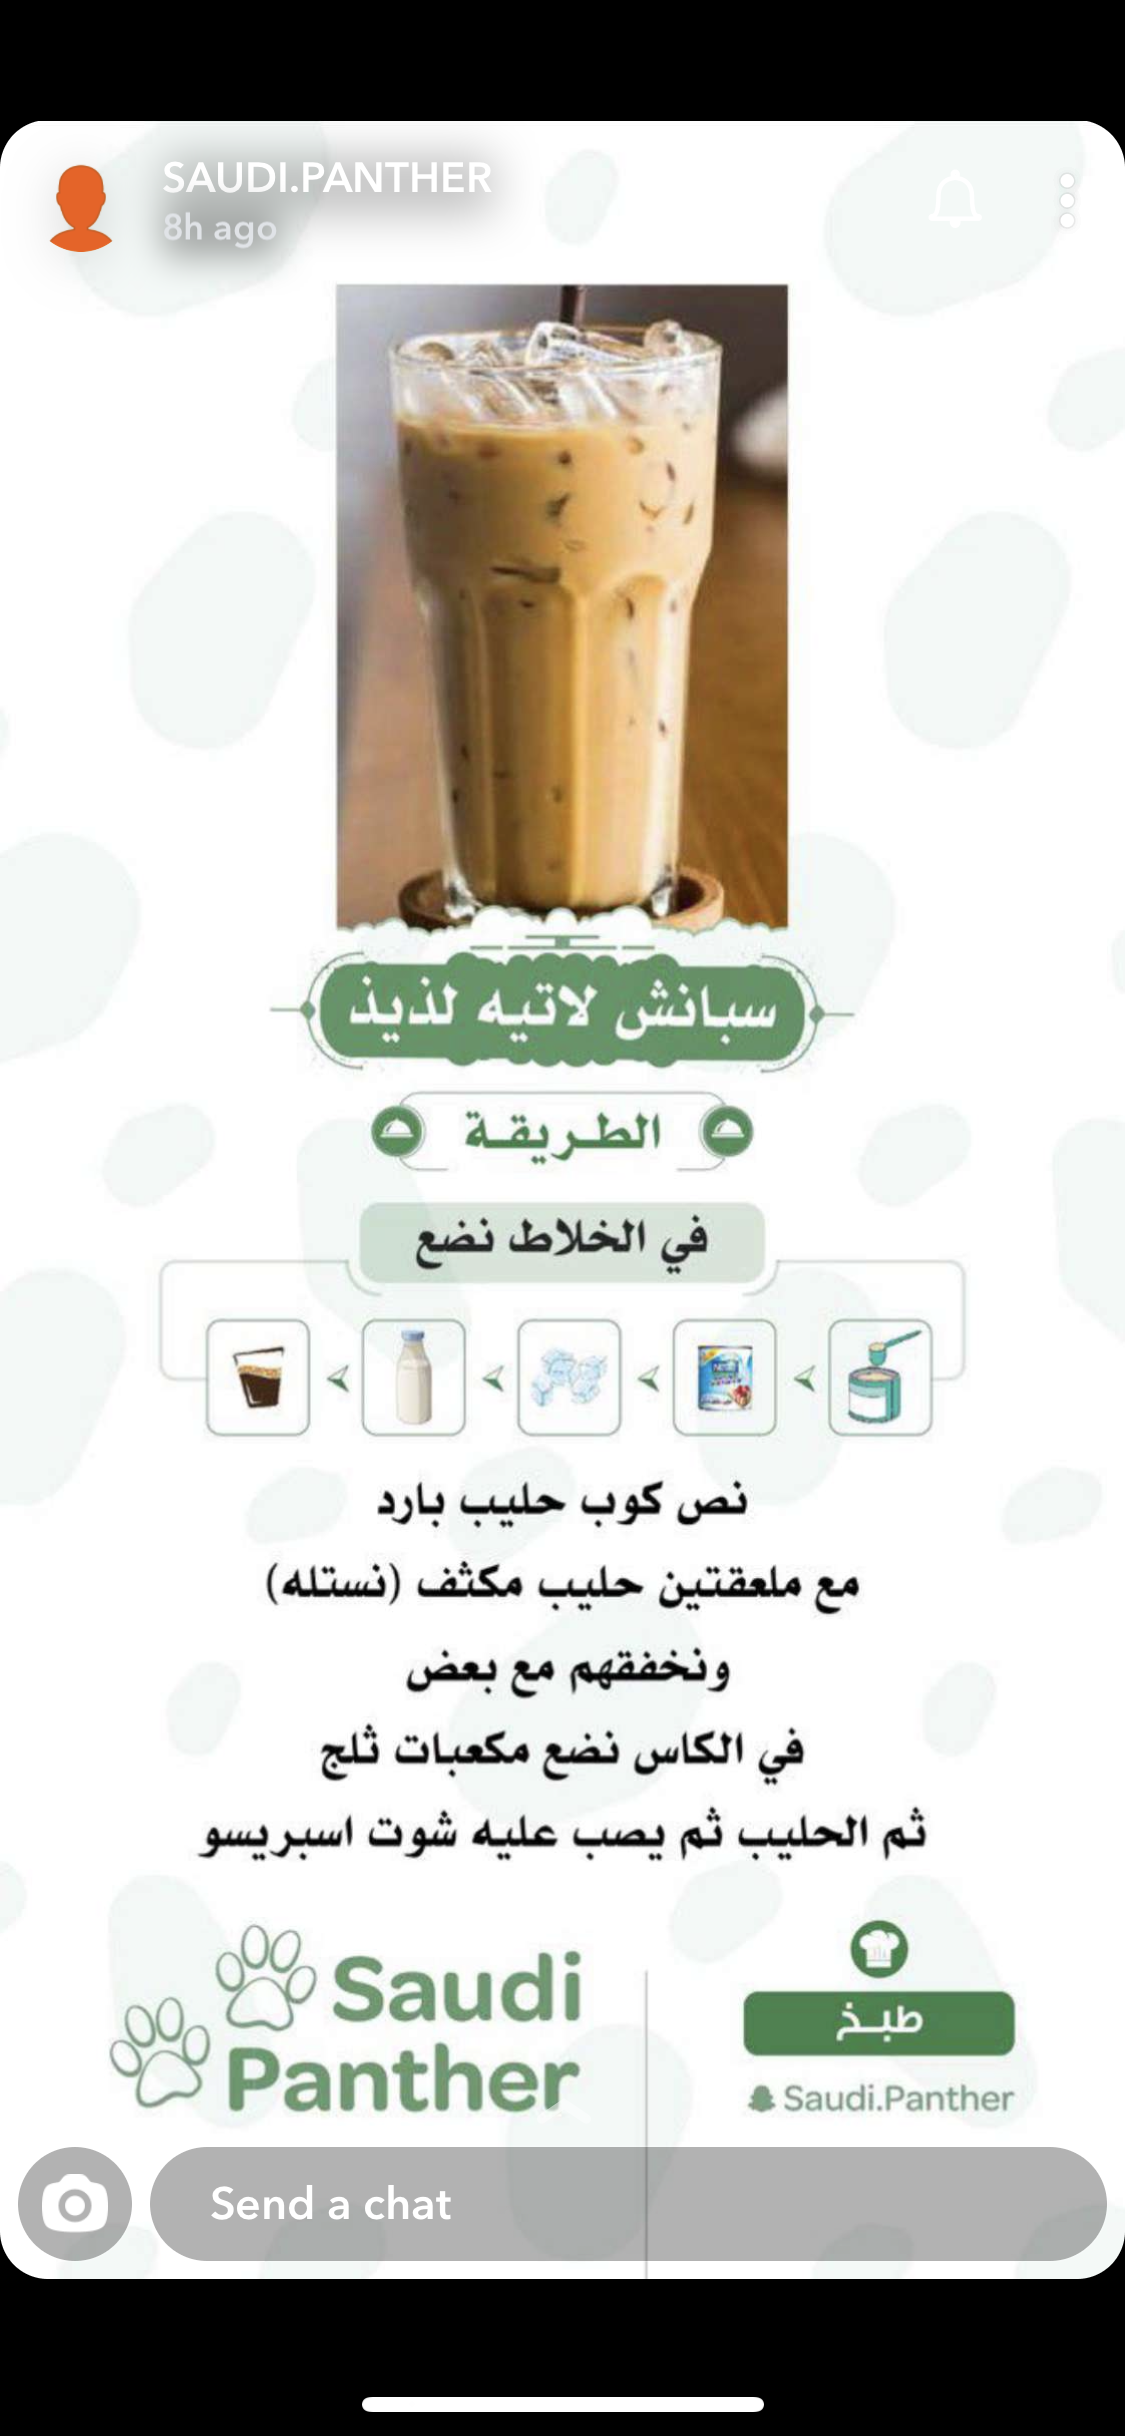 Pin By Hiba On Saudi Panther Detox Drinks Recipes Cooking Recipes Desserts Cookout Food